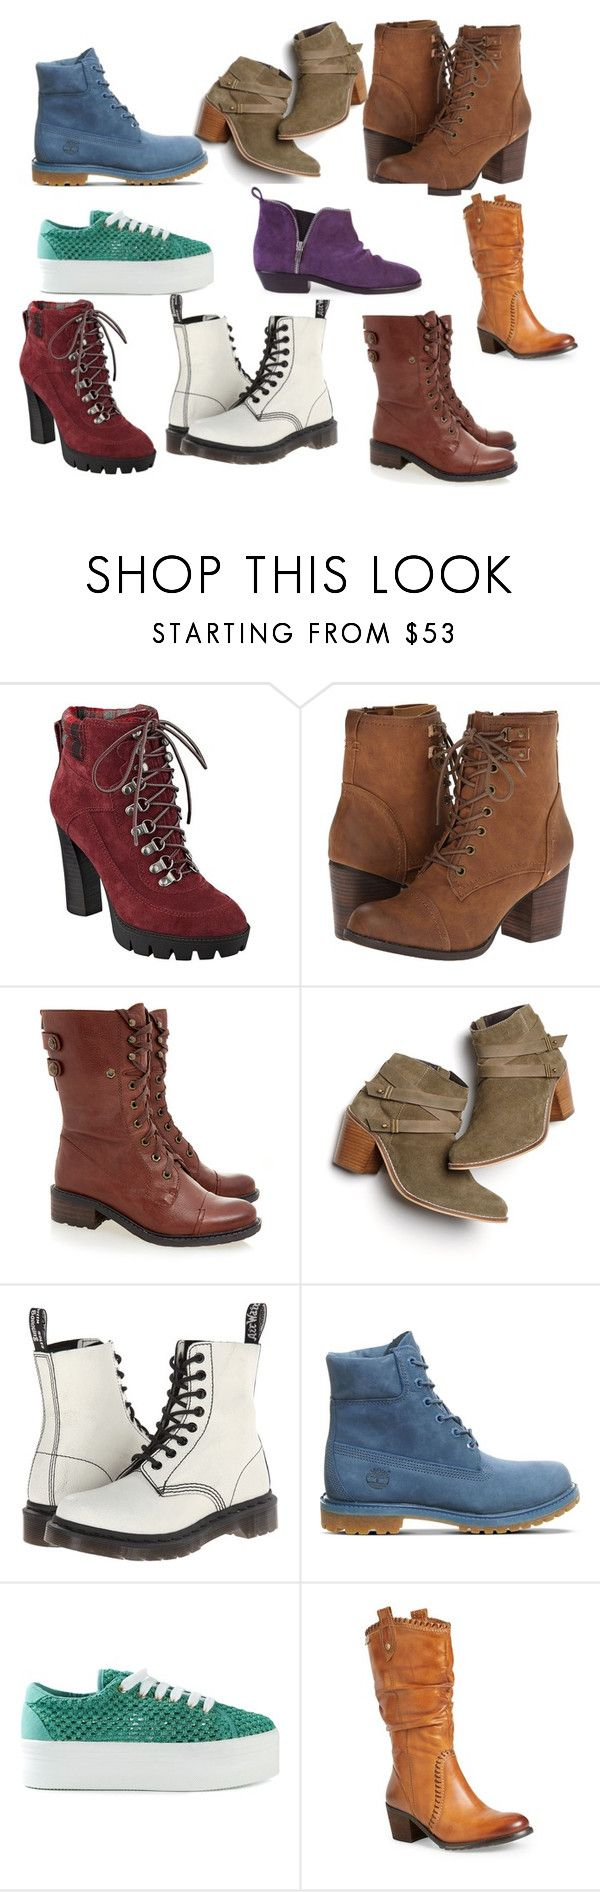 """""""сапоги"""" by artemia-13 on Polyvore featuring мода, Nine West, Madden Girl, Sam Edelman, Monsoon, Dr. Martens, Timberland, Jeffrey Campbell, Pikolinos и Golden Goose"""